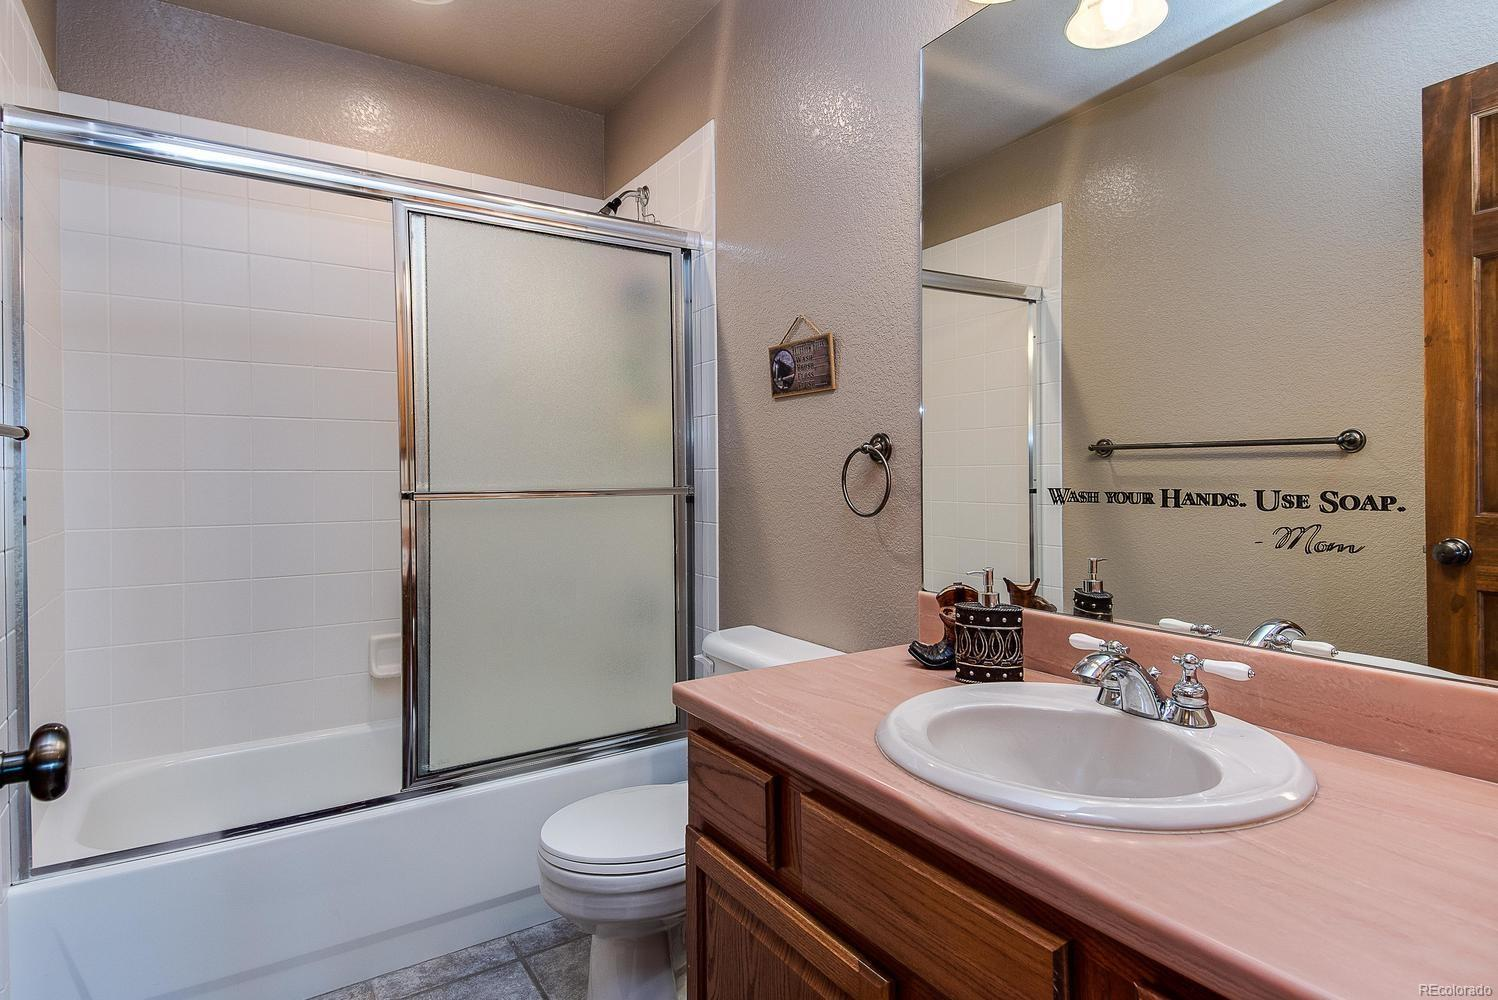 Vanity with storage space, soaking tub and shower